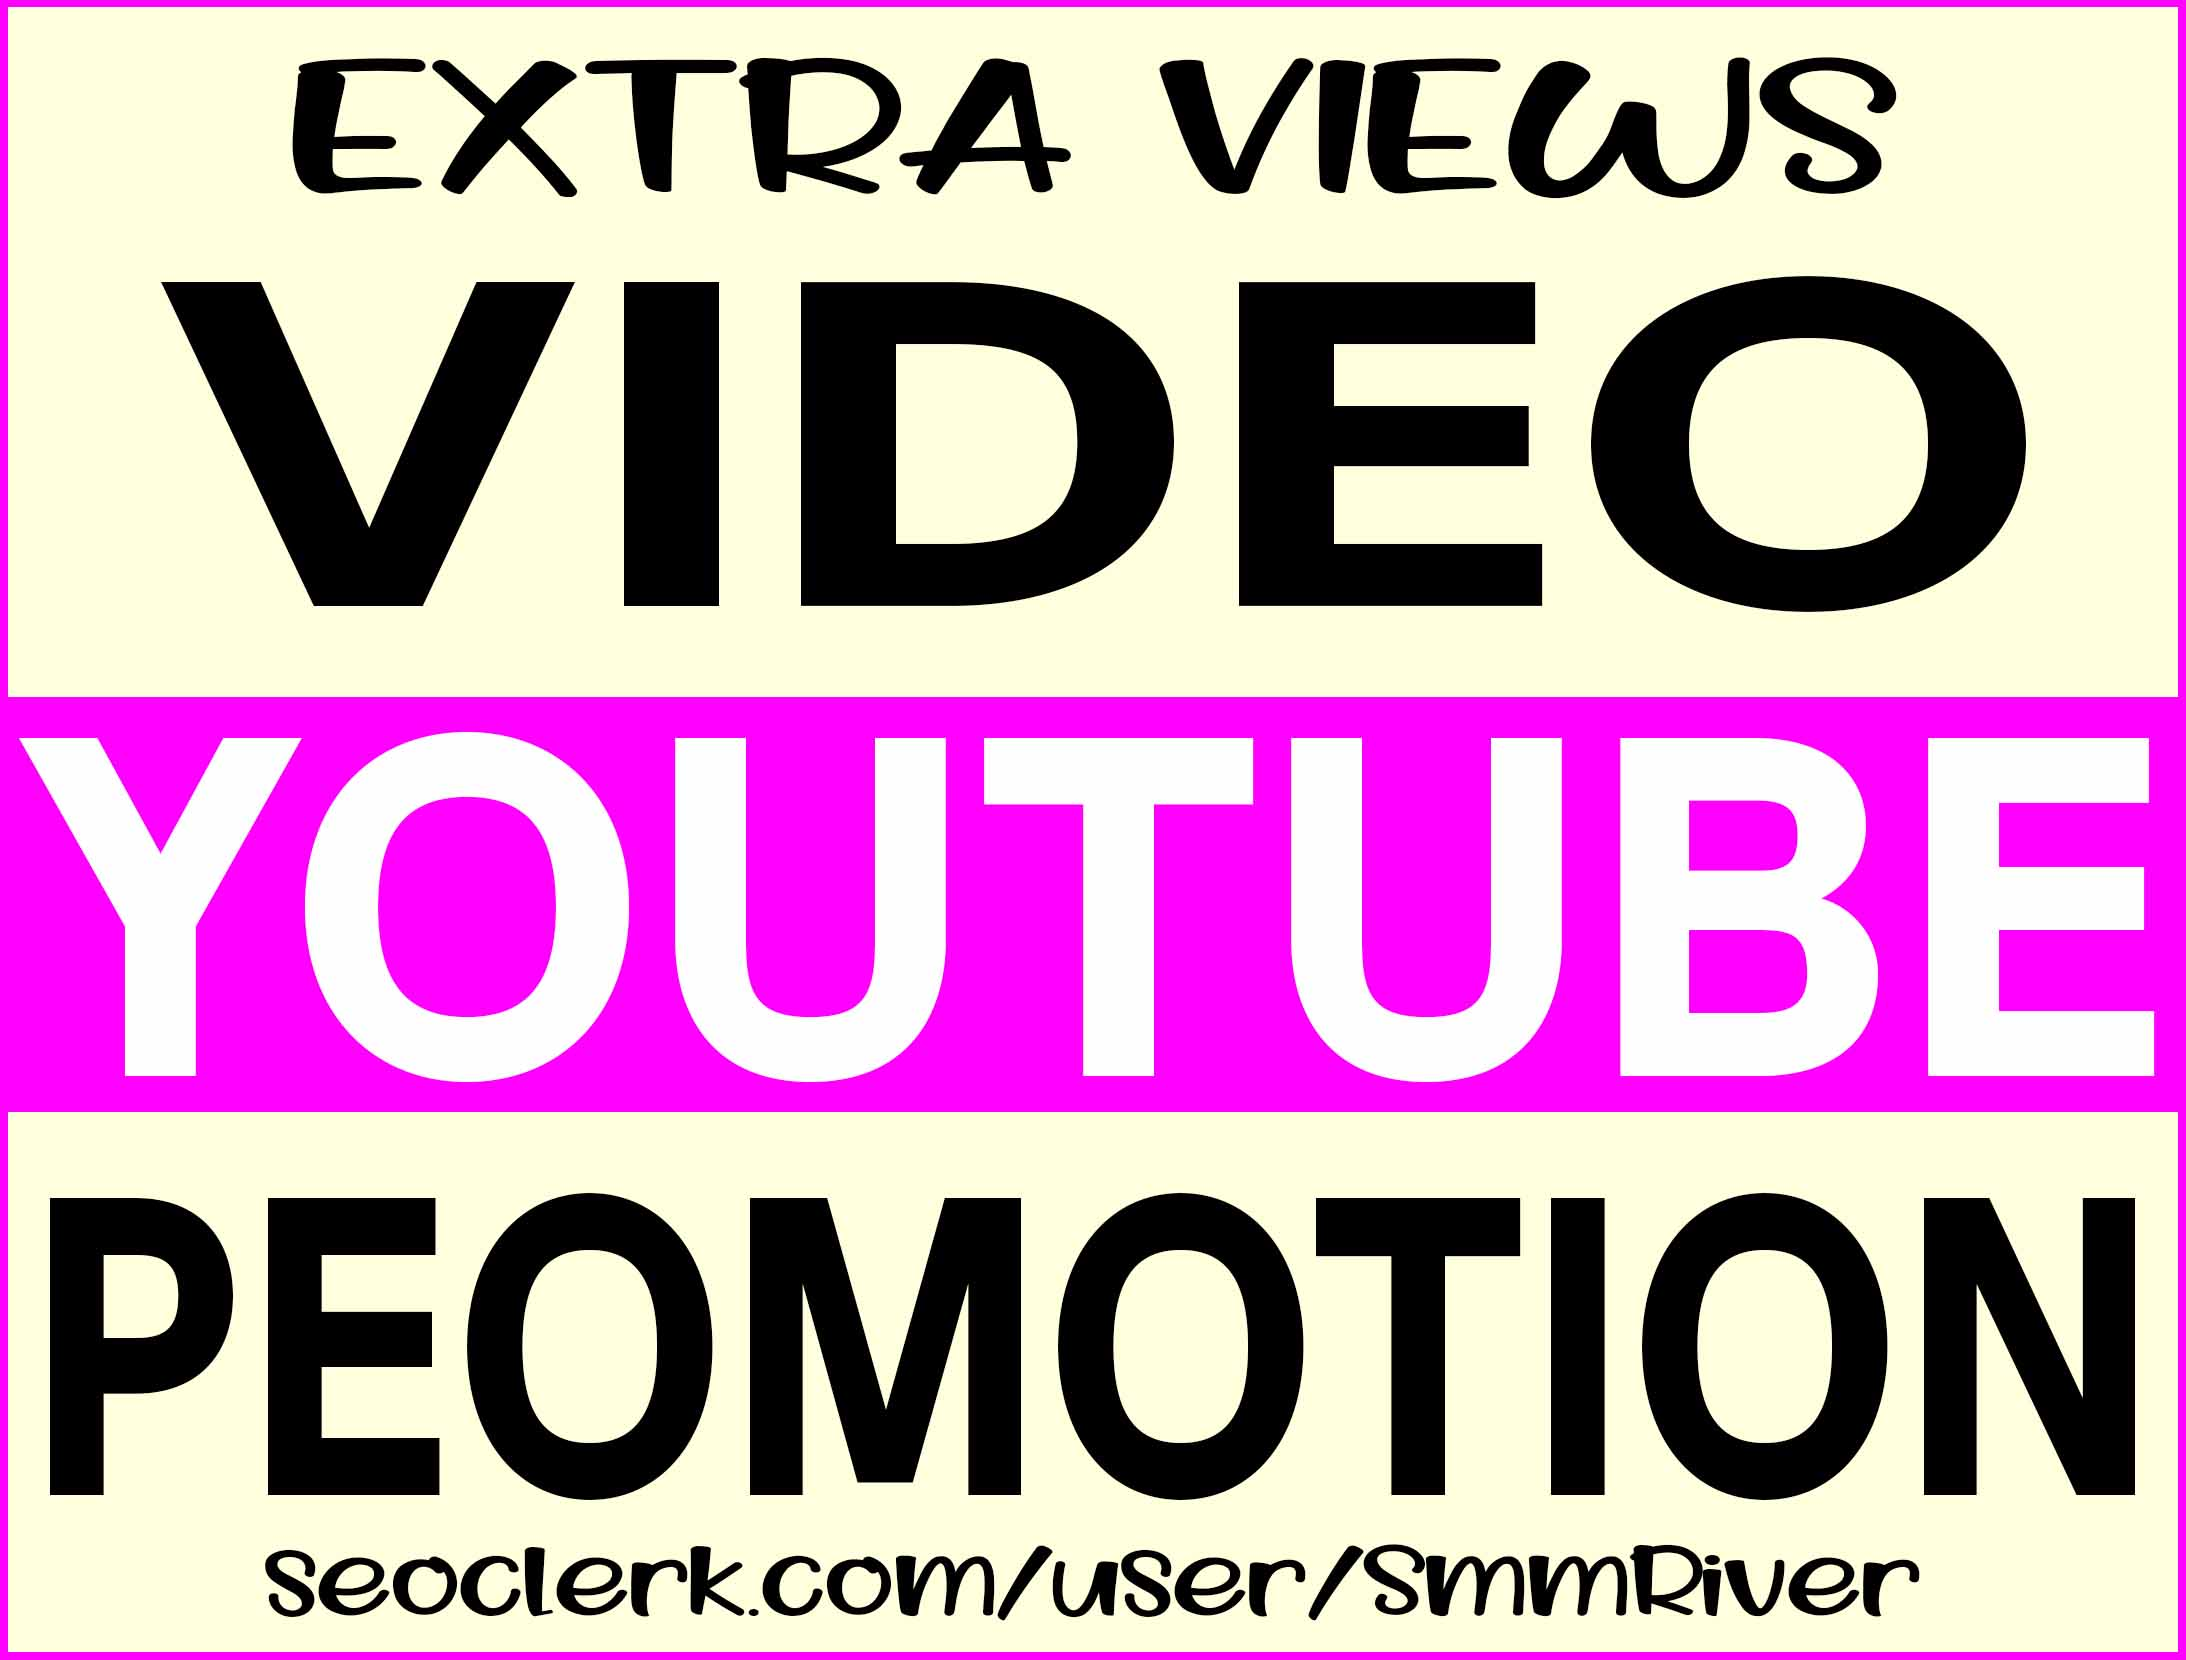 YOUTUBE VIDEO PROMOTION NON DROP & HIGH QUALITY EXPRESS DELIVERY